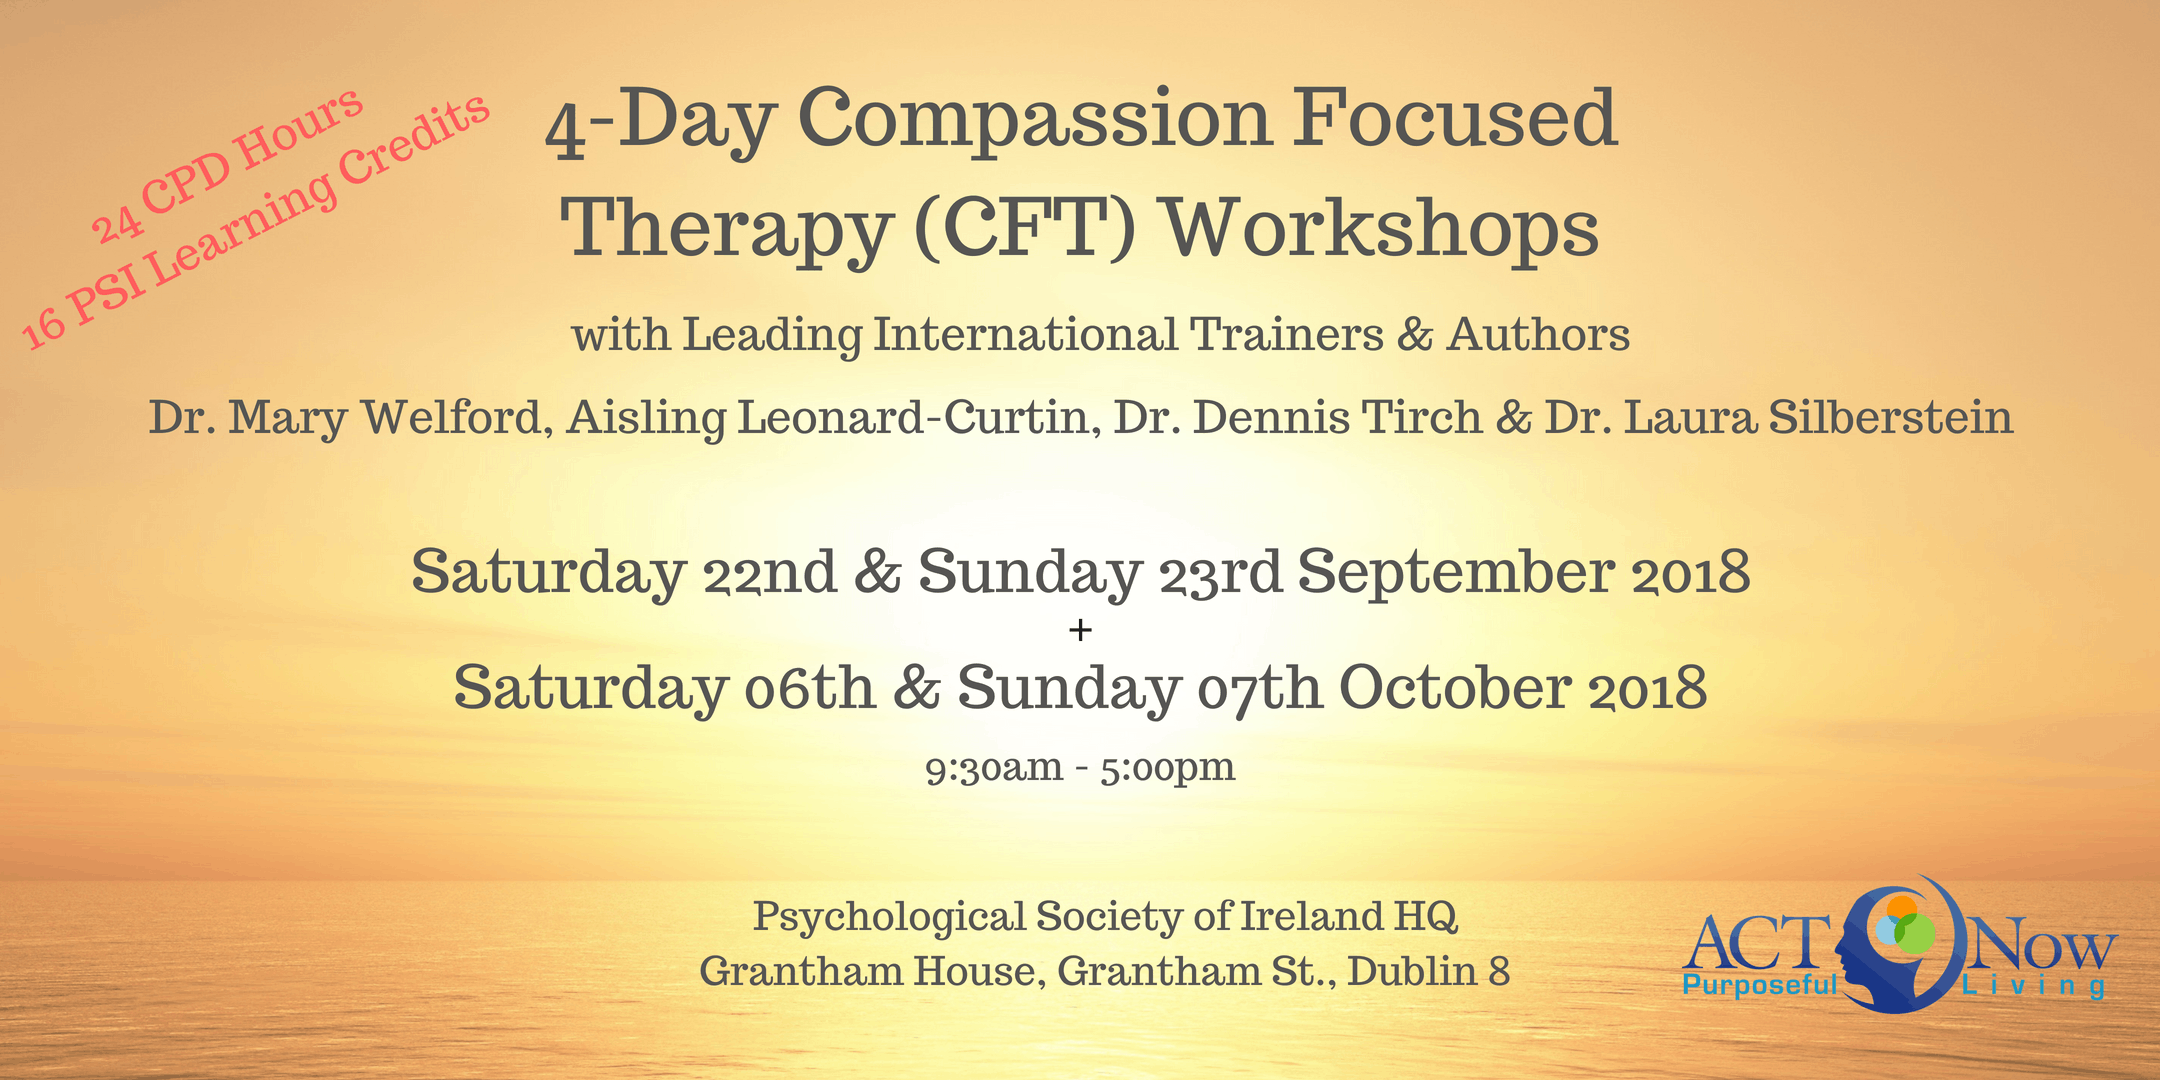 4-Day Compassion Focused Therapy (CFT) Workshops with Leading International Trainers & Authors Dr. Mary Welford, Aisling Leonard-Curtin, Dr. Dennis Tirch & Dr. Laura Silberstein